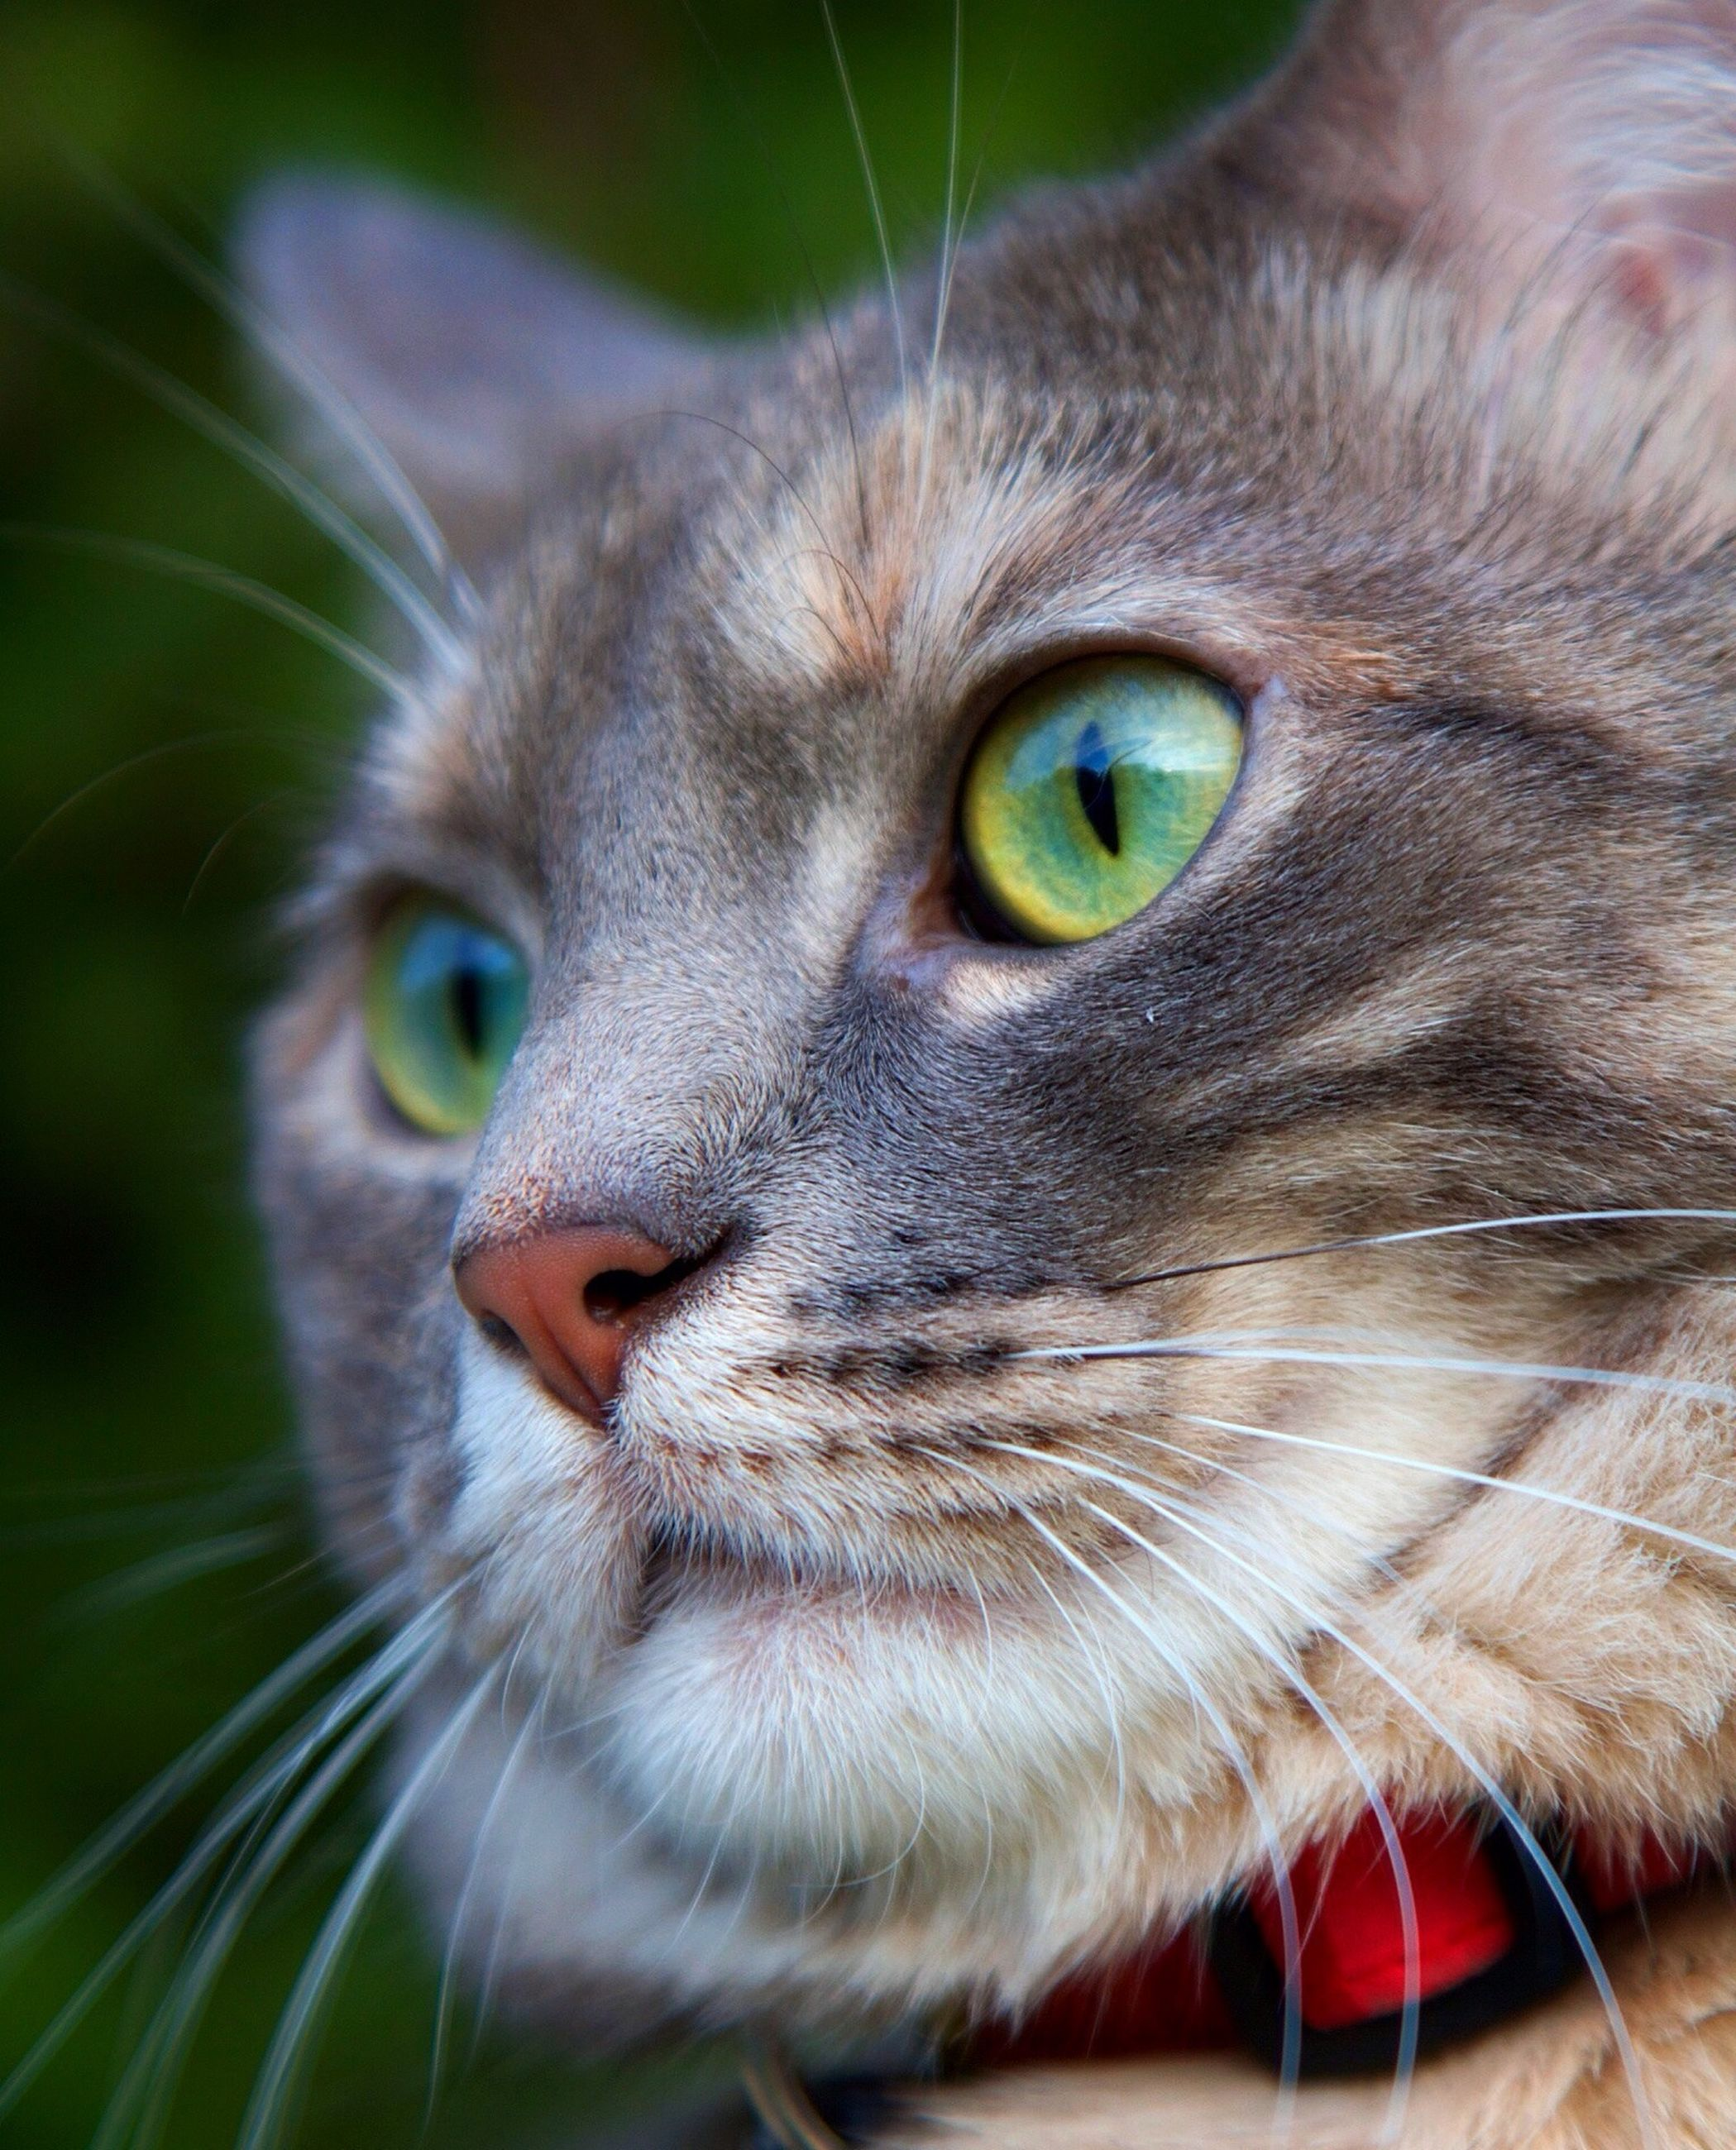 one animal, animal themes, domestic cat, whisker, cat, animal head, close-up, portrait, pets, animal eye, feline, mammal, looking at camera, domestic animals, staring, animal body part, focus on foreground, alertness, front view